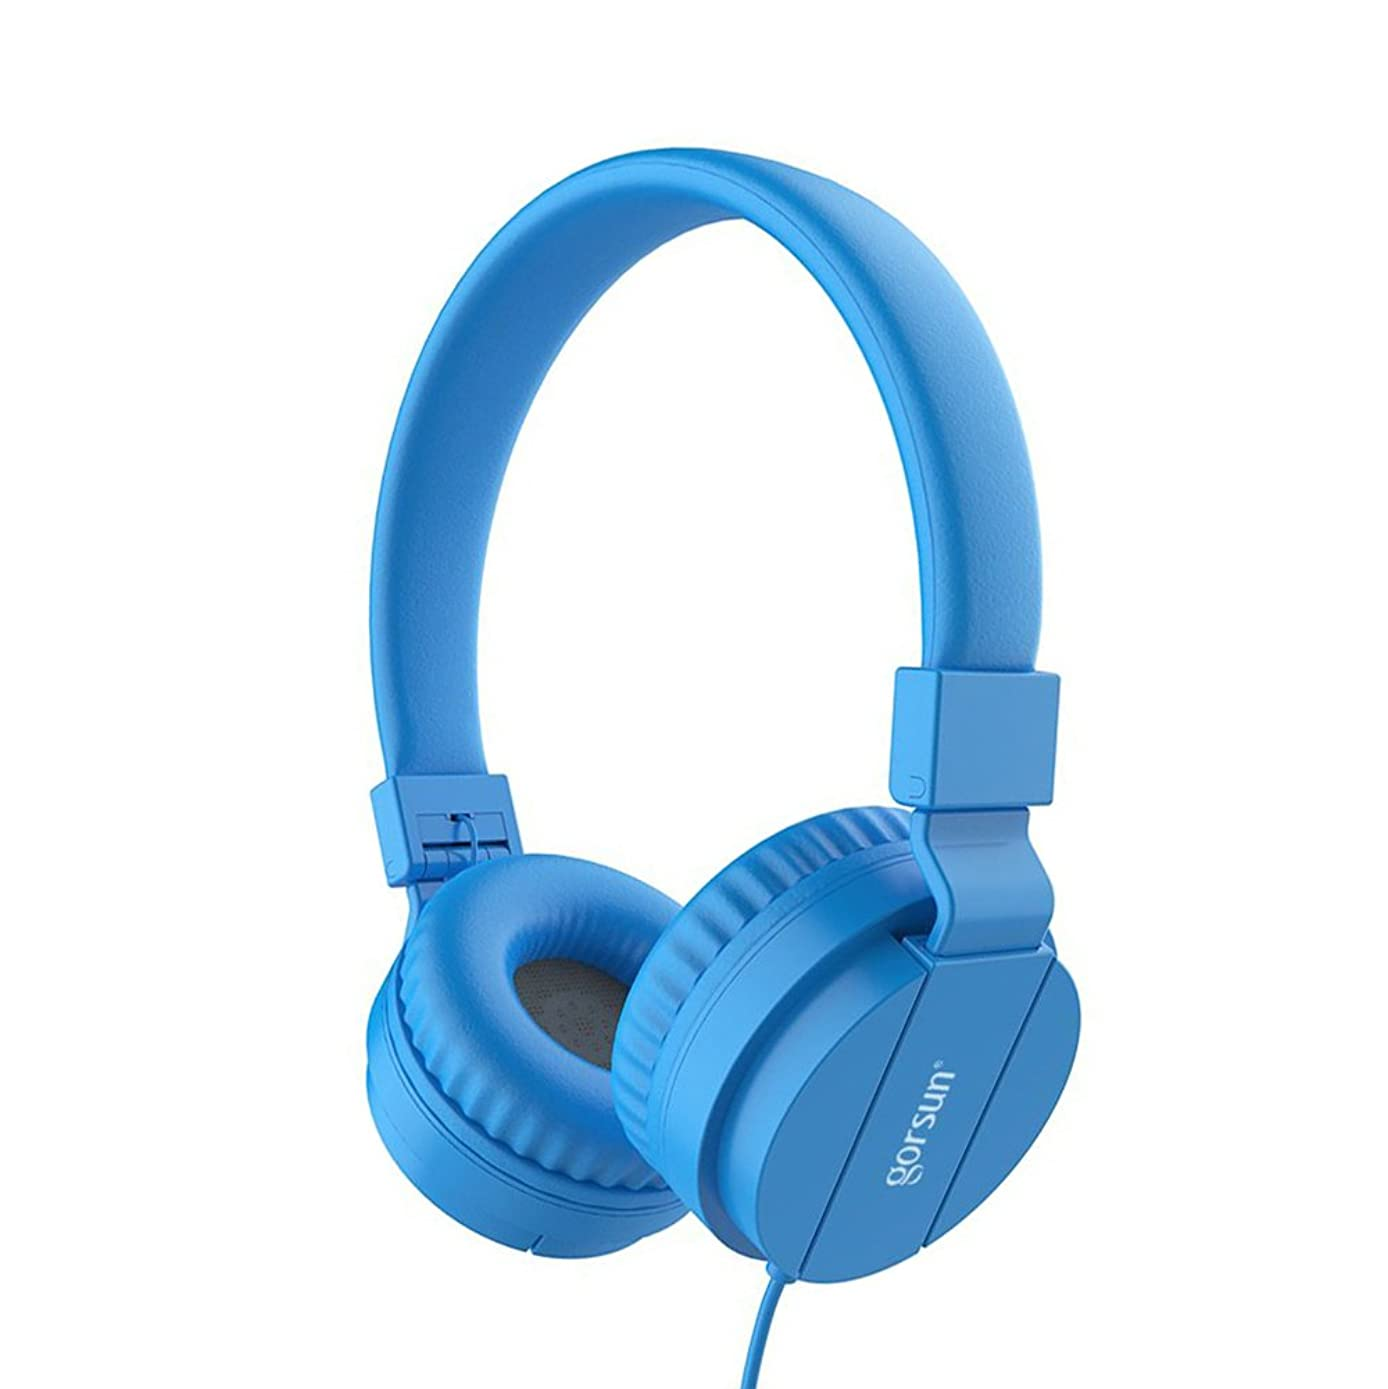 Kids Headphones,On-Ear Comfortable Foldable Headphones for Kids,Lightweight Stereo Headset for Kids Childrens Toddler School Girls Boys Headphones for Cellphone PC Laptop Tablet MP3/4(Blue)